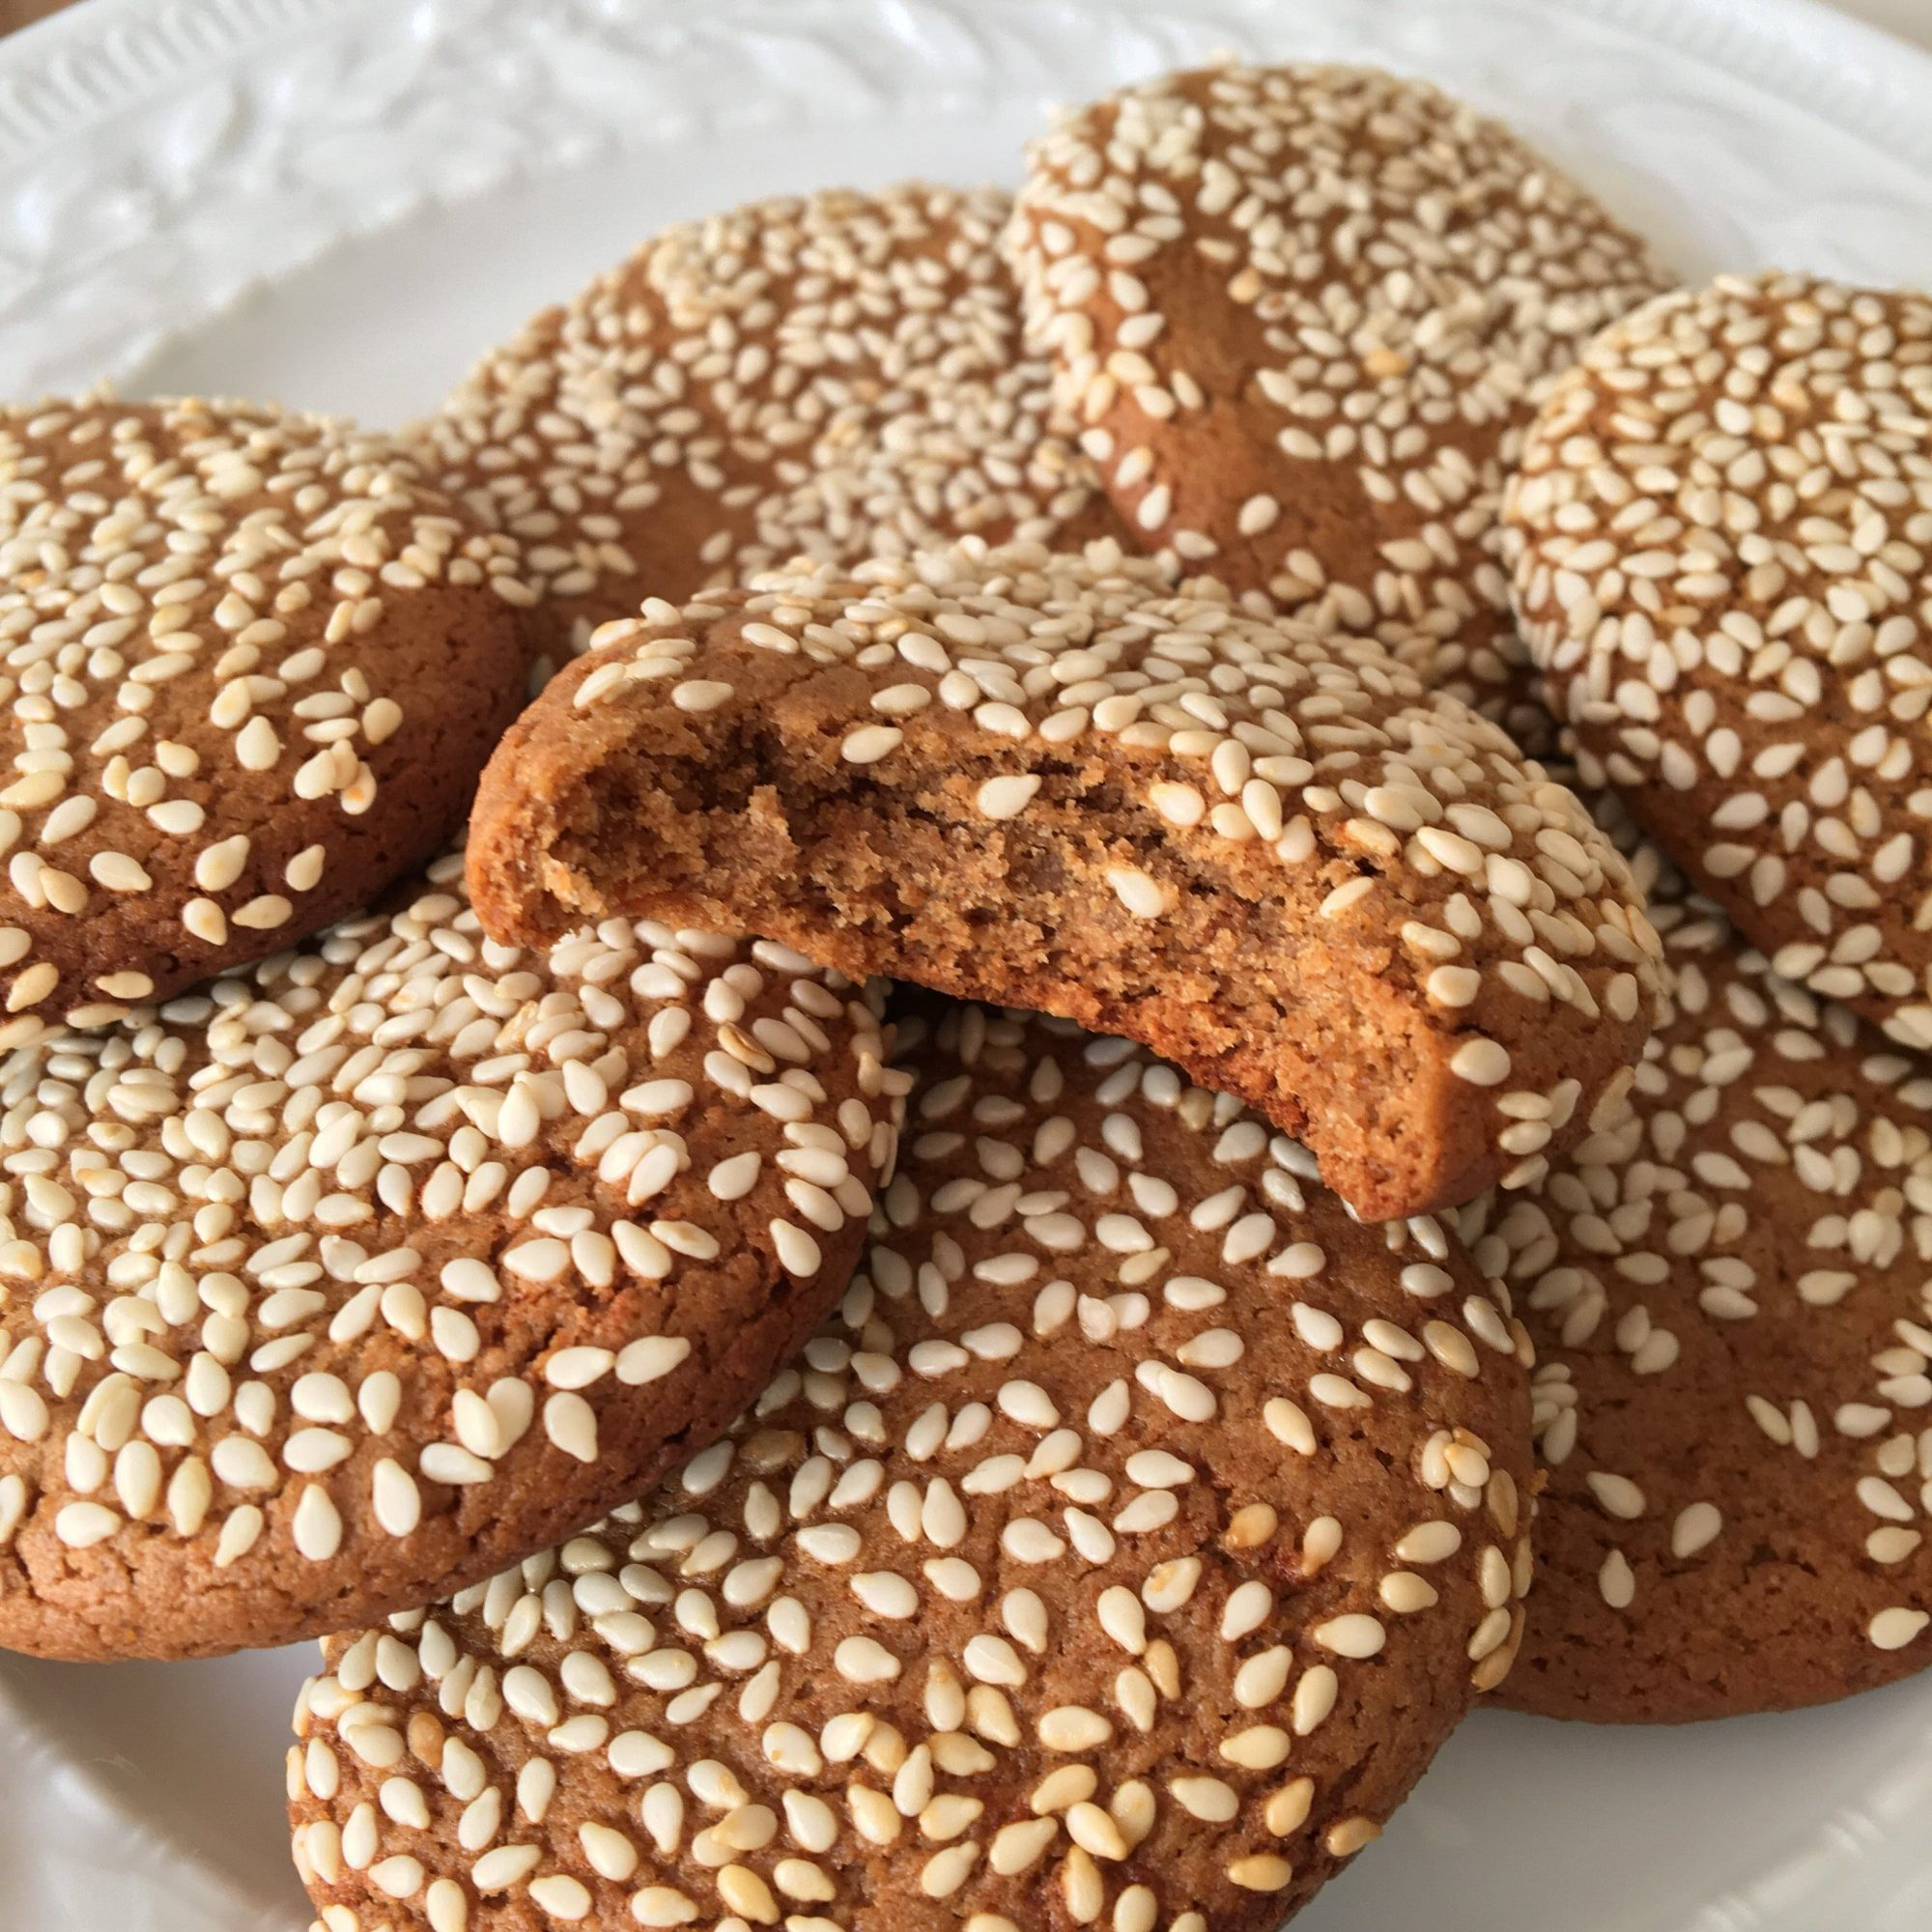 sesame cookies on a white plate